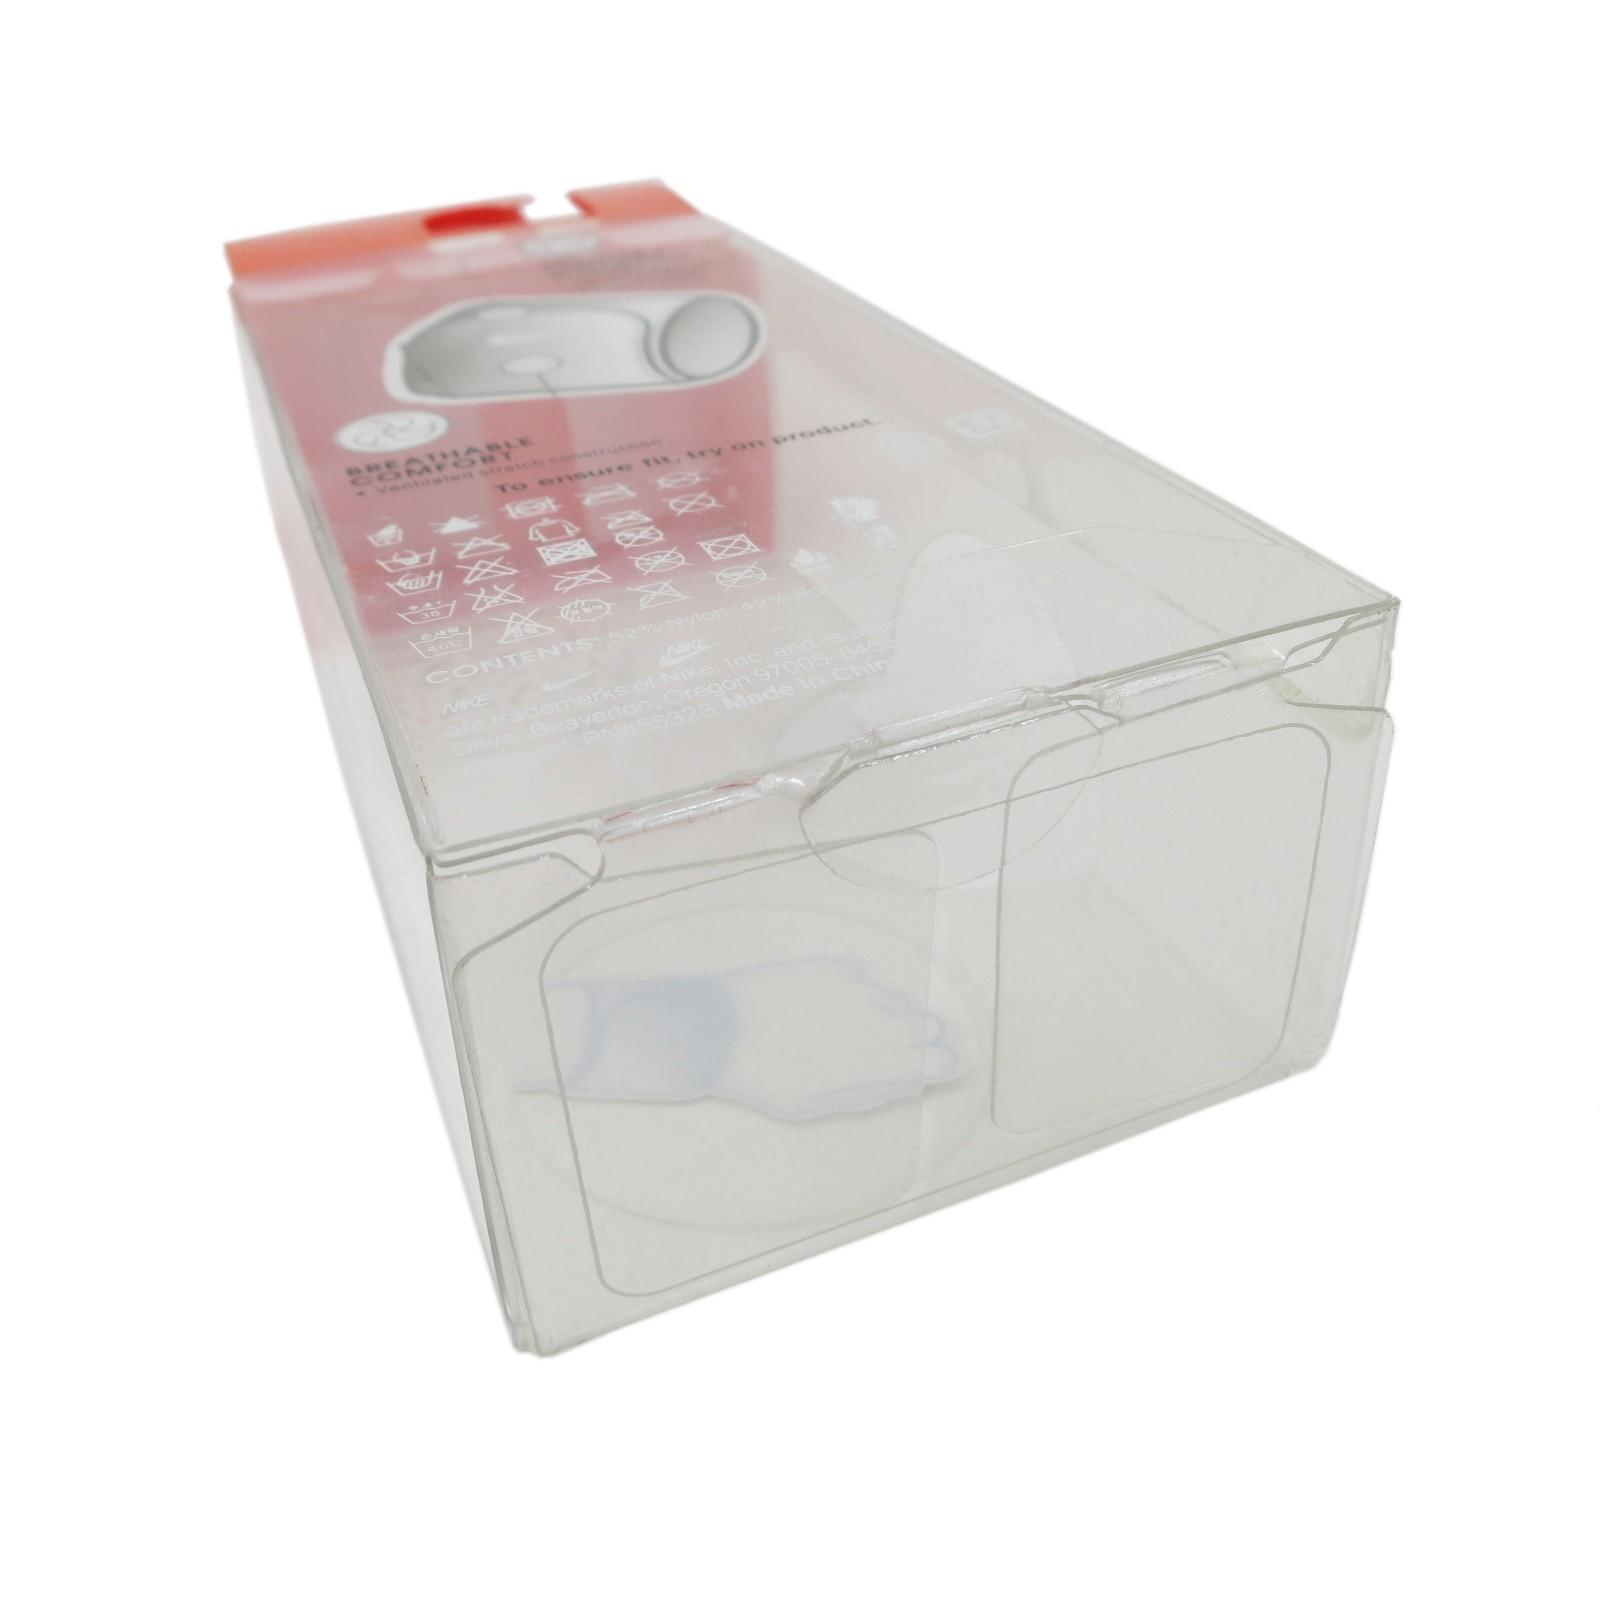 Yijianxing Plastic Products reasonable clear plastic box manufacturers bulk production for gifts